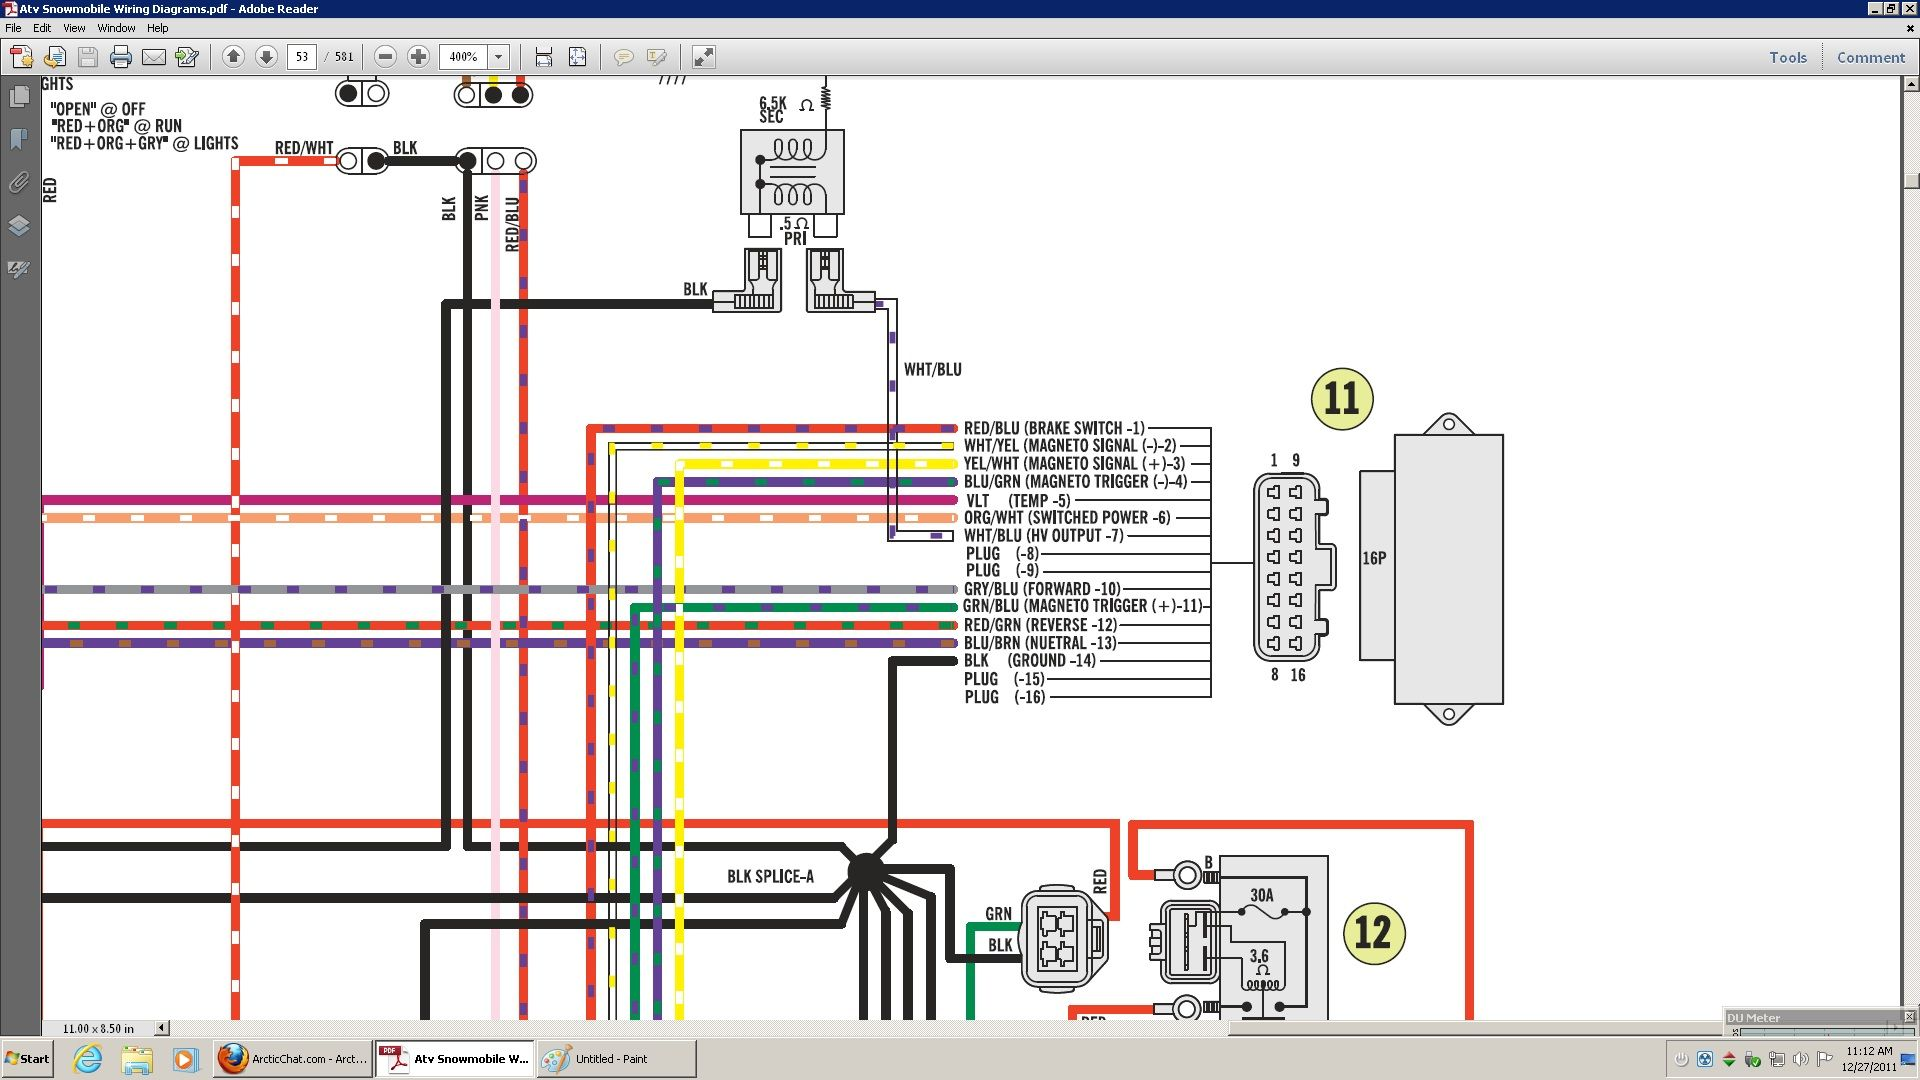 Polaris Scrambler 90 Wiring Diagram Tiger Life Cycle Image Result For Battery 2008